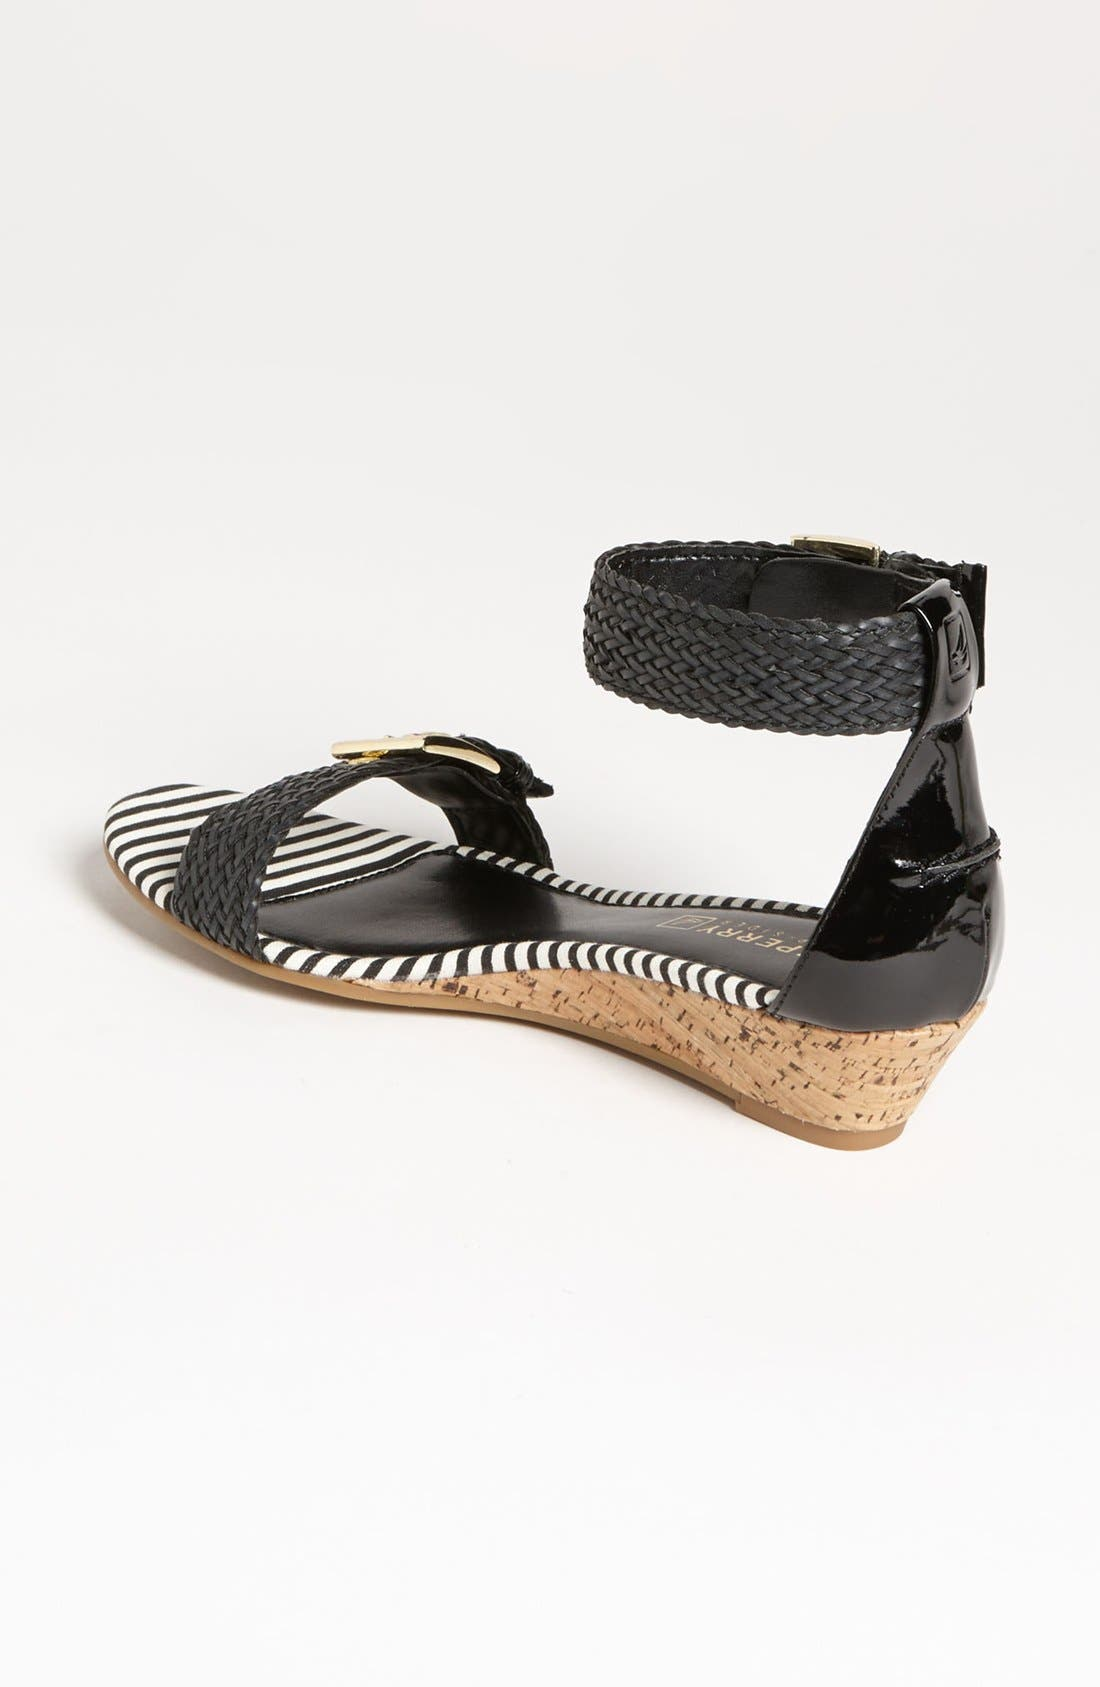 SPERRY, Top-Sider<sup>®</sup> 'Lynbrook' Sandal, Alternate thumbnail 2, color, 001